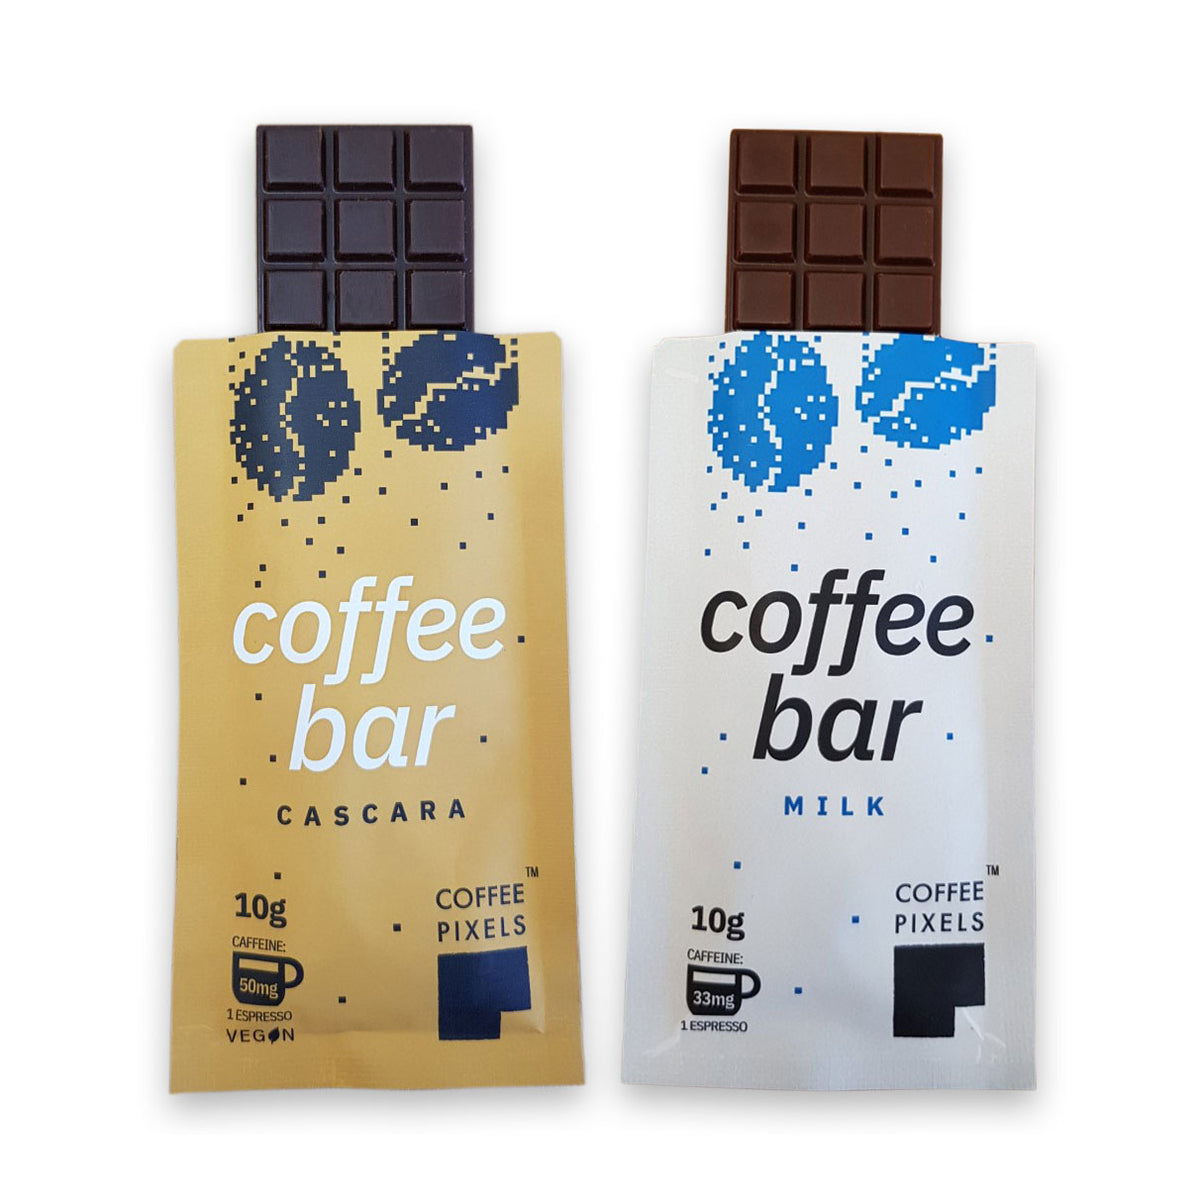 MIX Coffee Bars